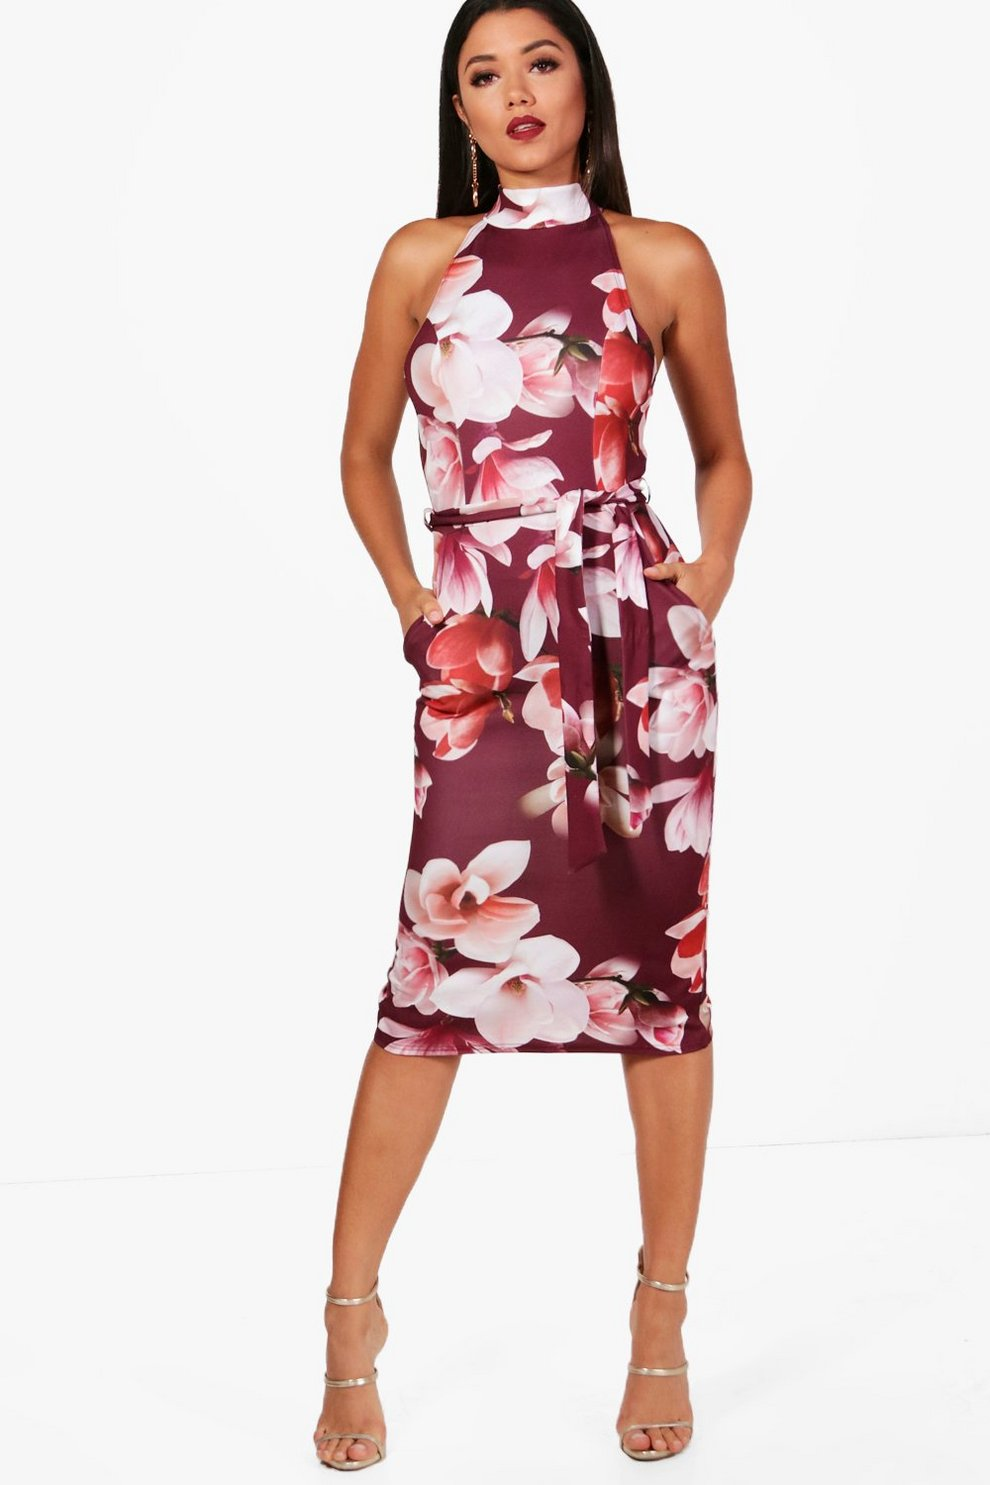 e275ea062c063 Boohoo High Neck Floral Midi Dress - raveitsafe